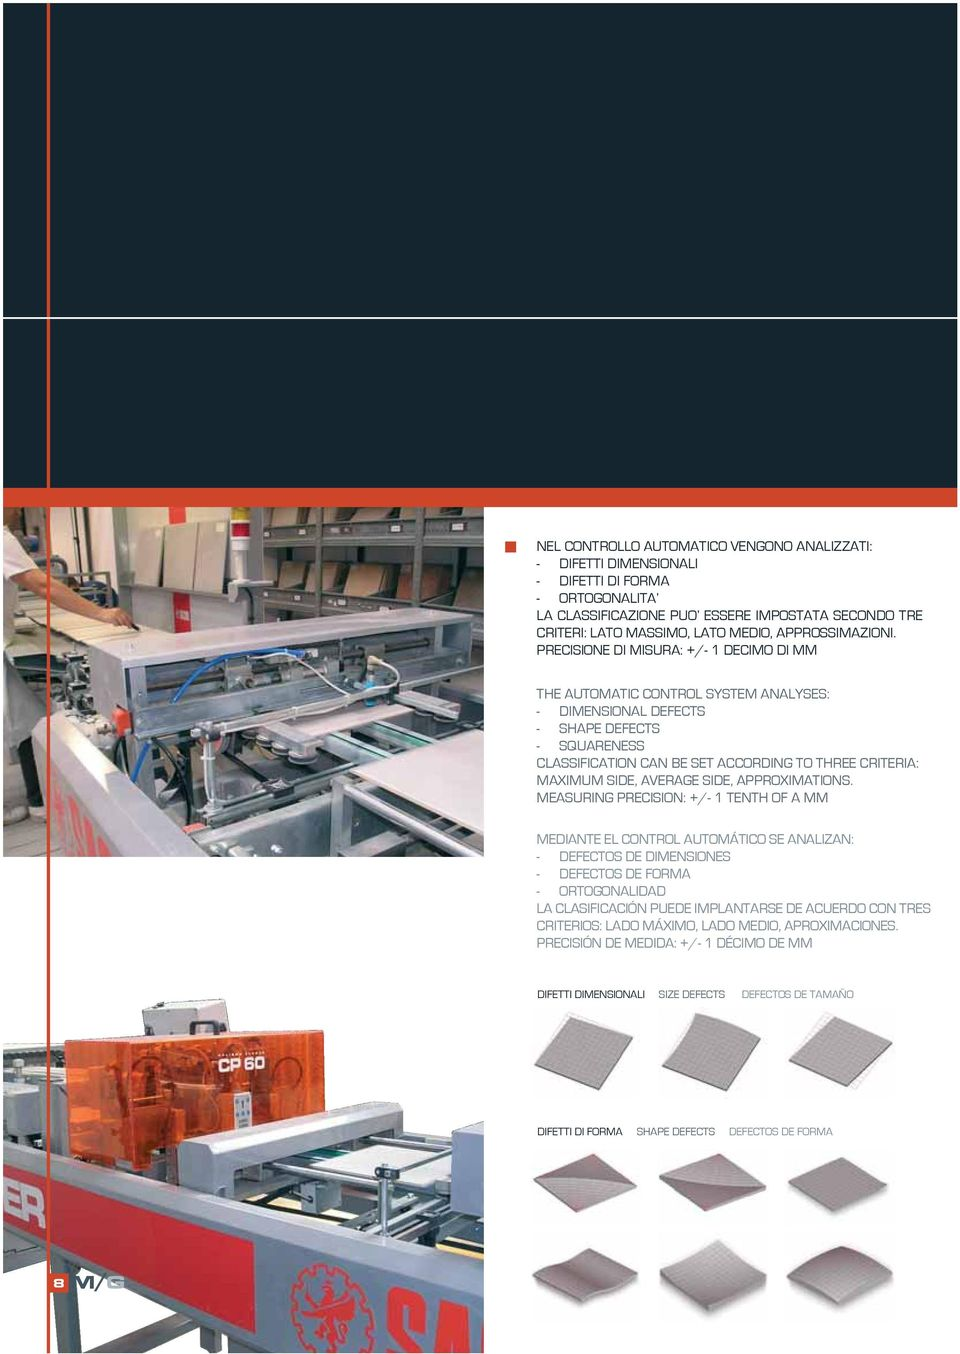 PRECISIONE DI MISURA: +/- 1 DECIMO DI MM THE AUTOMATIC CONTROL SYSTEM ANALYSES: - DIMENSIONAL DEFECTS - SHAPE DEFECTS - SQUARENESS CLASSIFICATION CAN BE SET ACCORDING TO THREE CRITERIA: MAXIMUM SIDE,